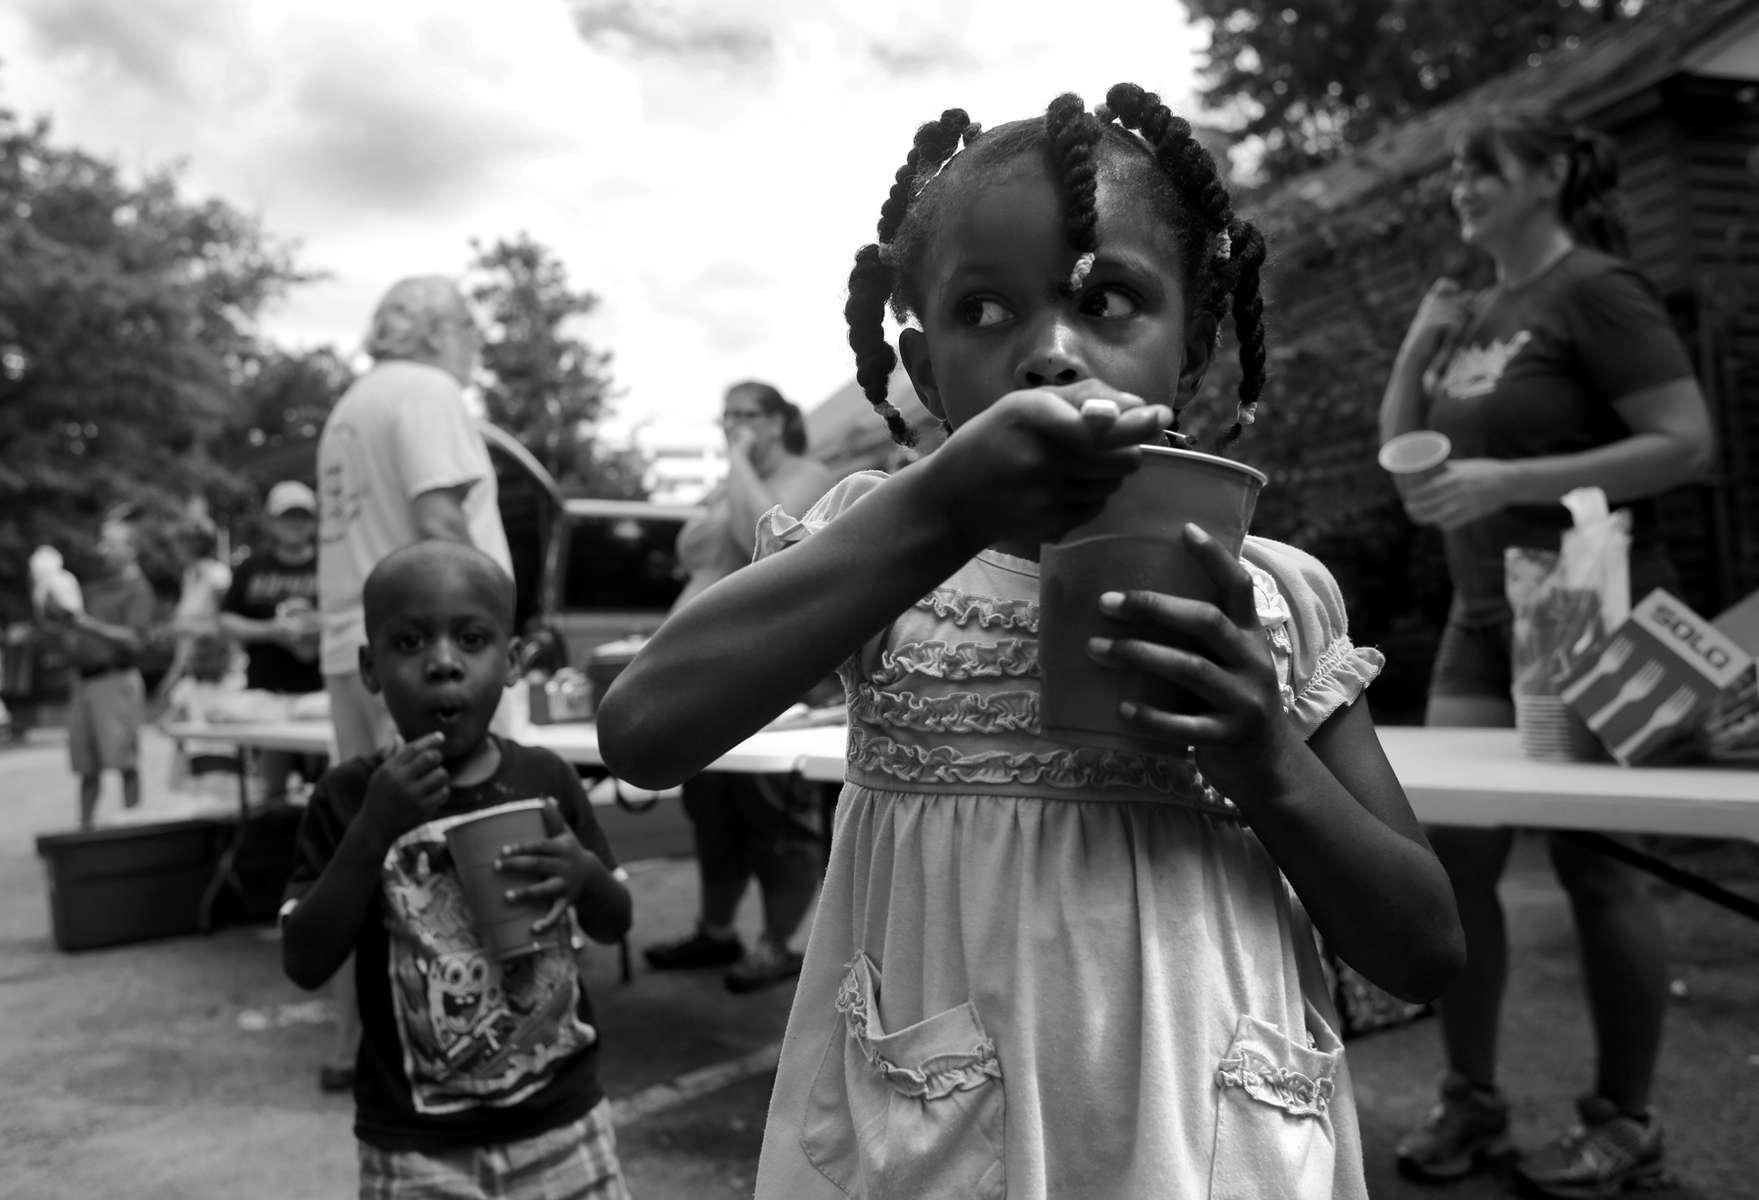 First Place | News Photo Story Travis Long, The News & ObserverChildren eat fruit from cups Sunday as the HumanBeans charity group distributed food to those in need in the parking lot of Mo's Diner near Moore's Square in downtown Raleigh. Police have started enforcing a city ordinance to stop volunteer and church groups from feeding the homeless in downtown Raleigh's Moore Square park.